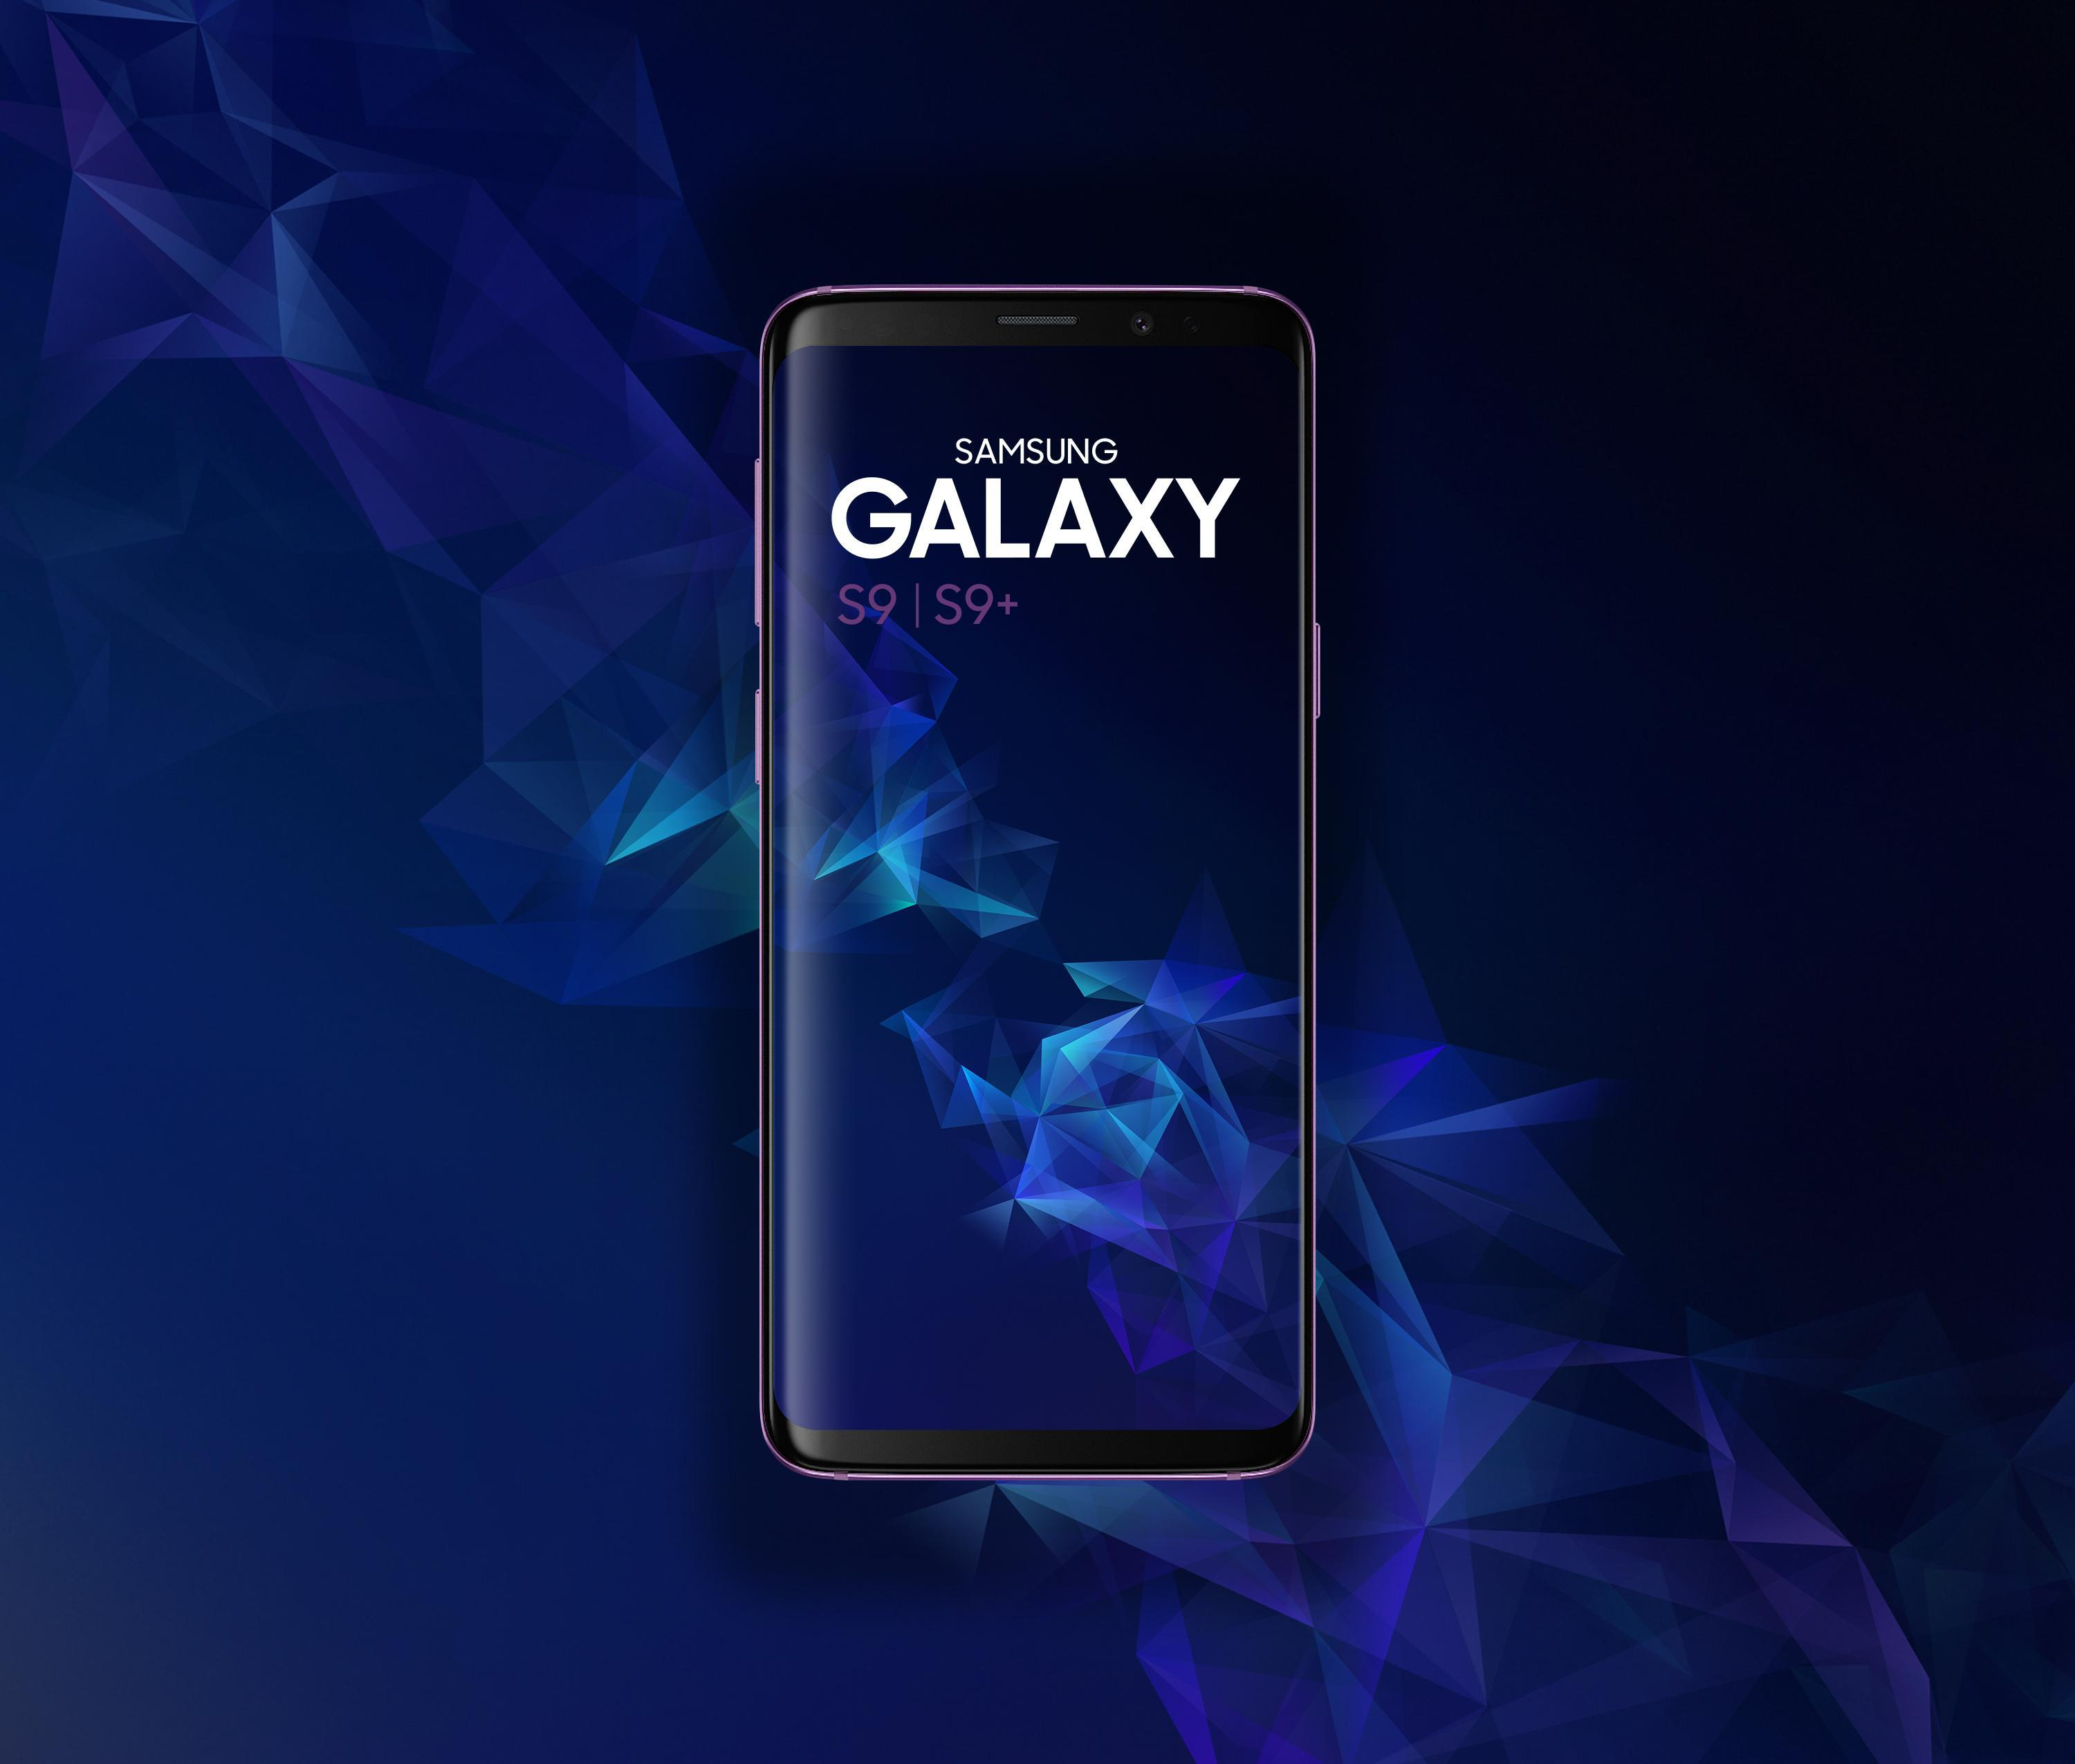 S9 S9 Plus Wallpapers 4k For Android Apk Download